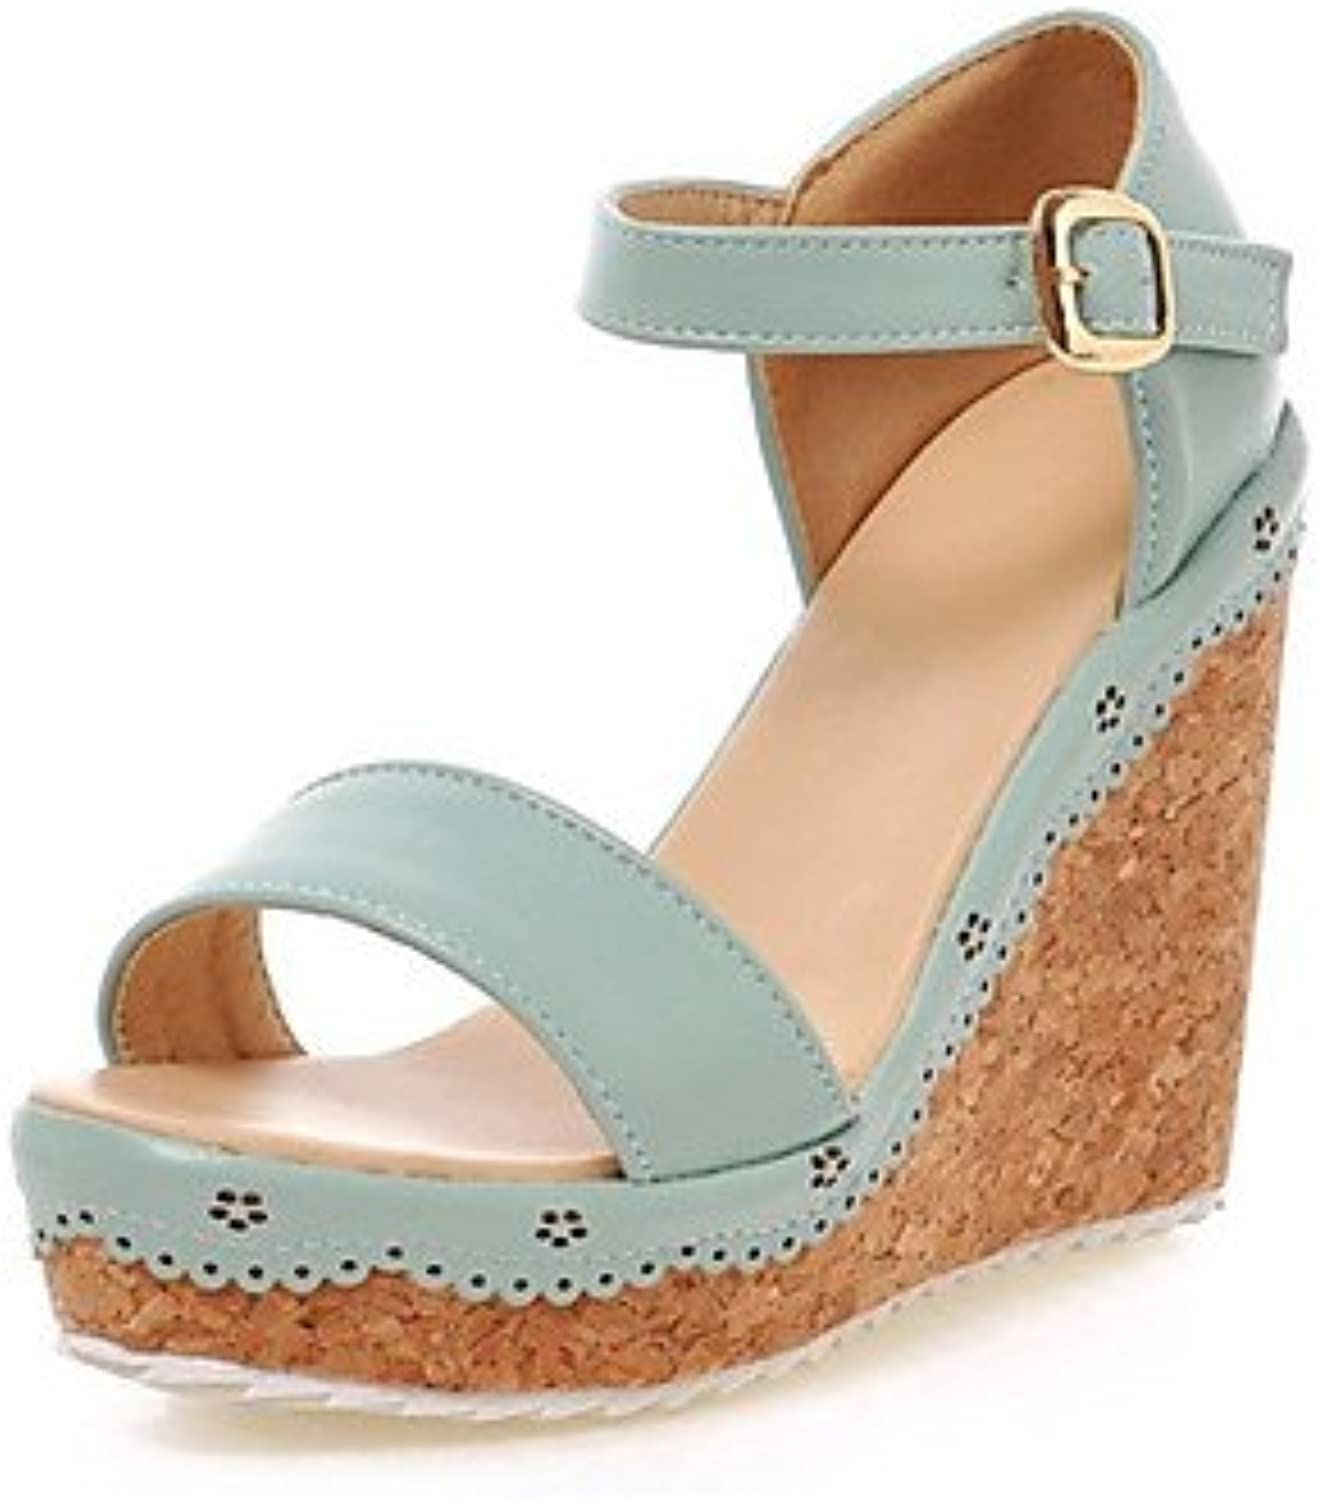 N.Y.L.A. Women's shoes Leatherette Wedge Heel Wedges Platform Open Toe Sandals Office & Career Dress Casual bluee Pink, Pink, us9.5-10   eu41   uk7.5-8   cn42